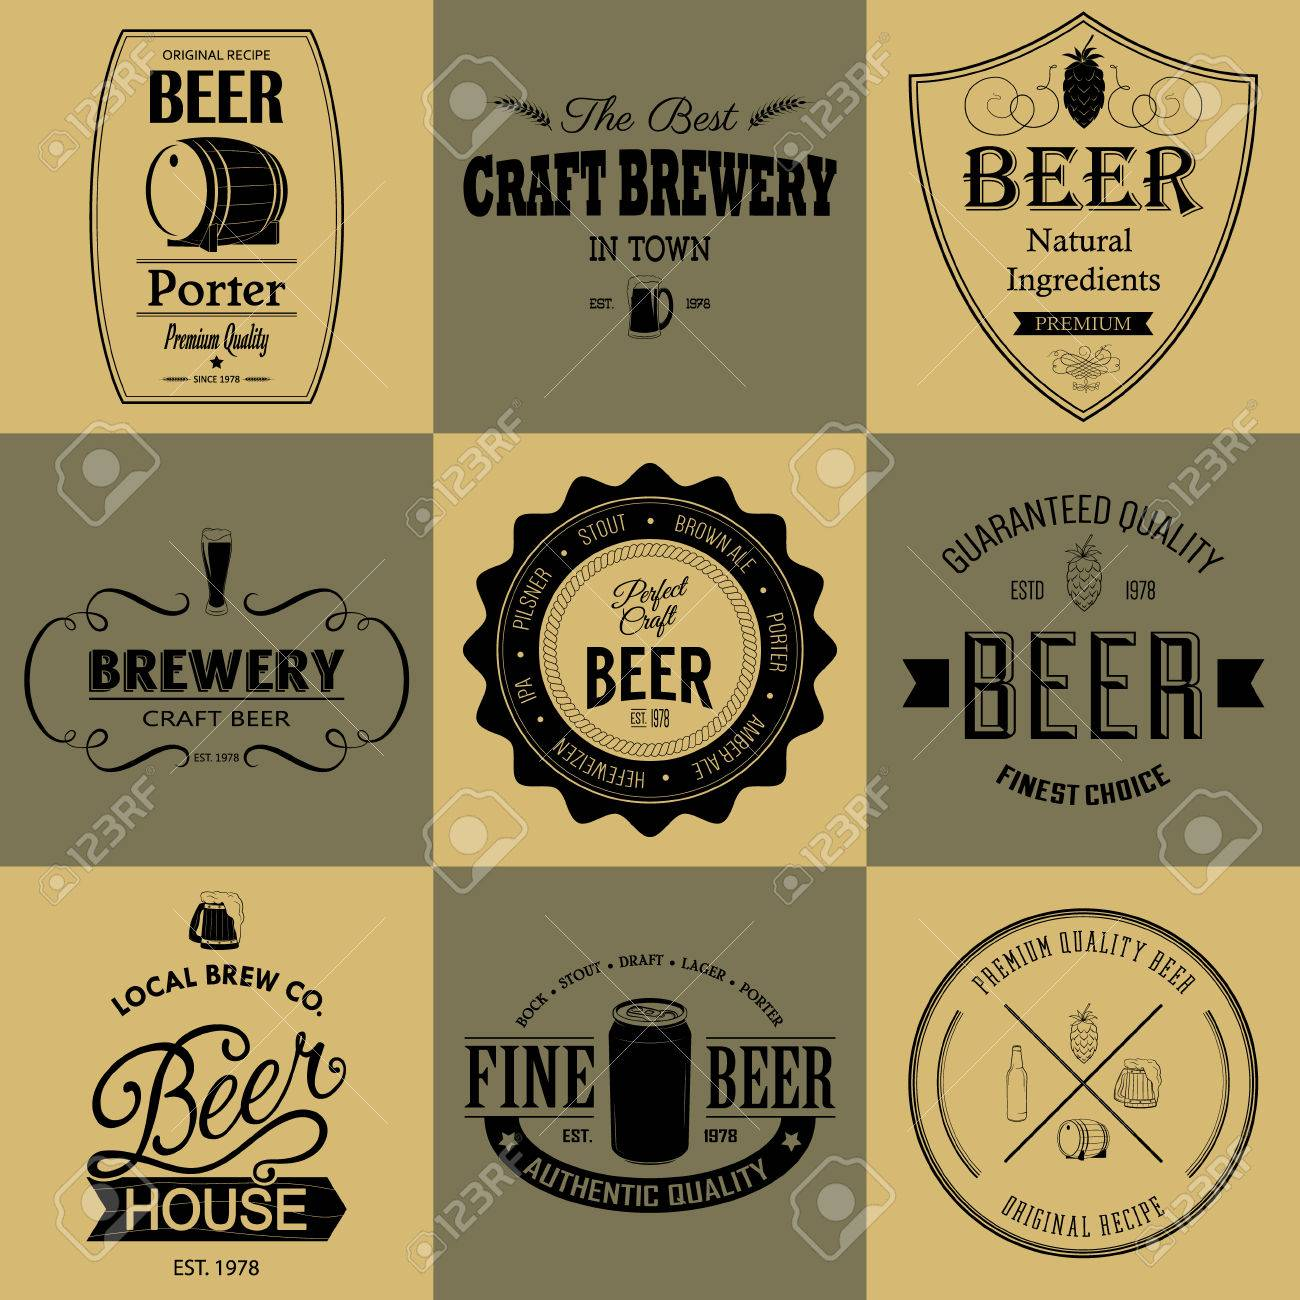 beer can label template 9586 loadtve